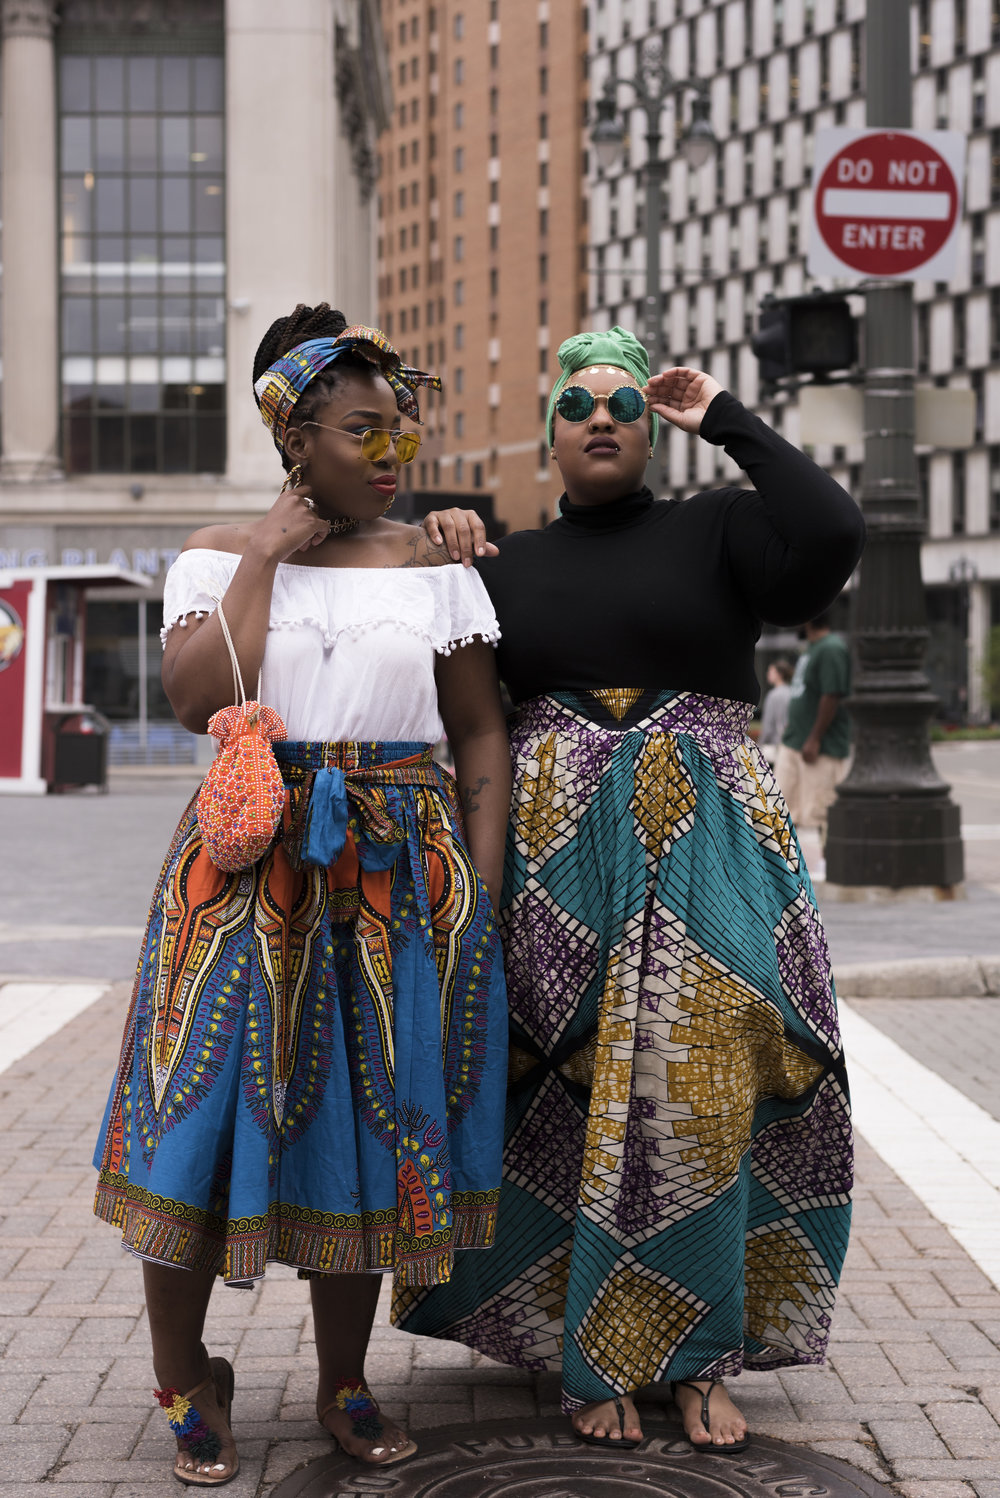 Leah-Vernon-Plus-Size-Muslim-Model-Detroit-Blogger-Body-Positive-Black-Girl-African-Print-Dress-4.jpg